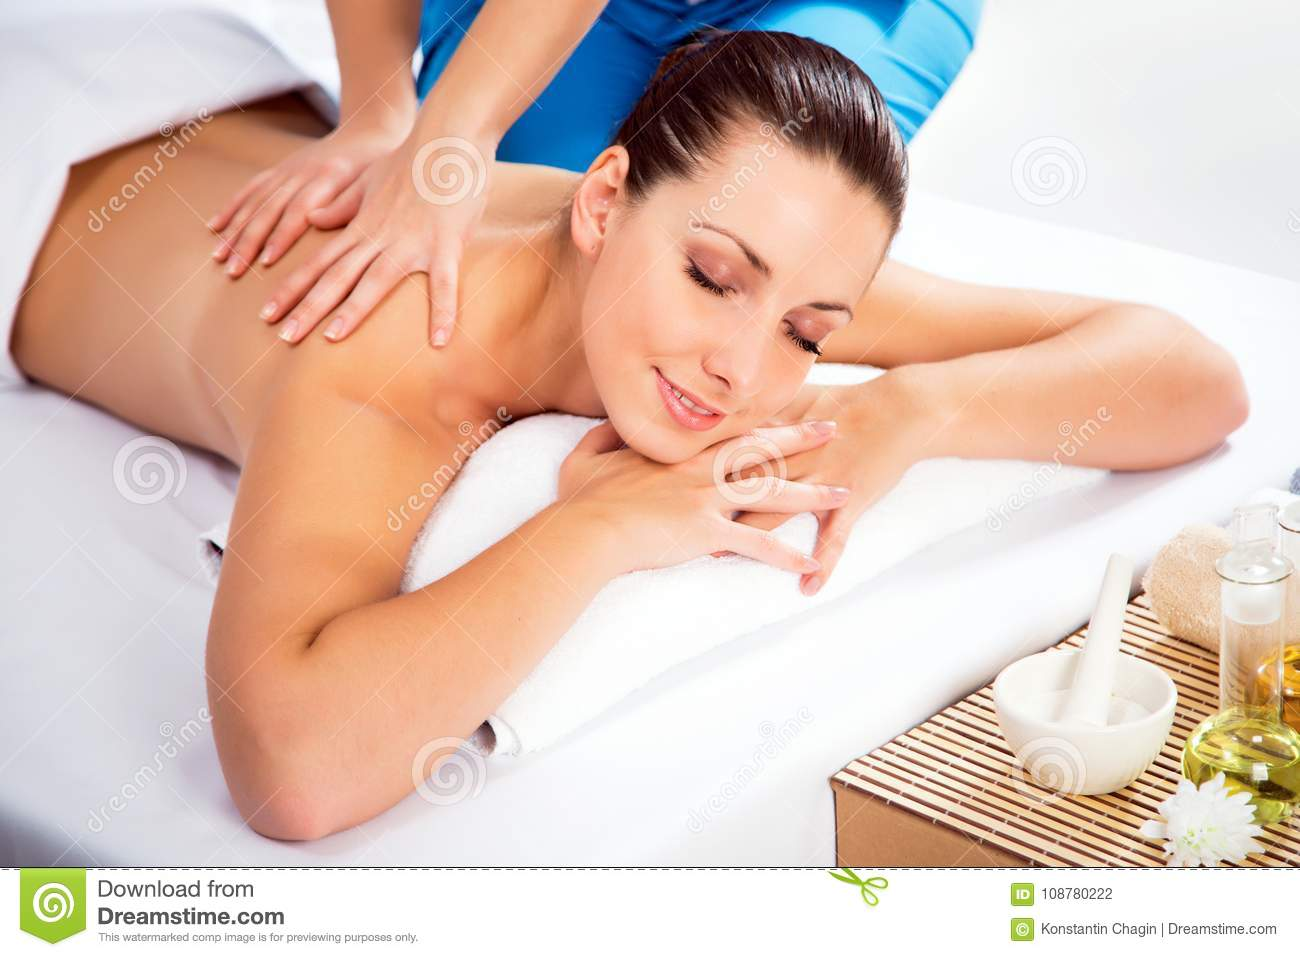 Woman On Healthy Massage Of Body Stock Photo - Image of